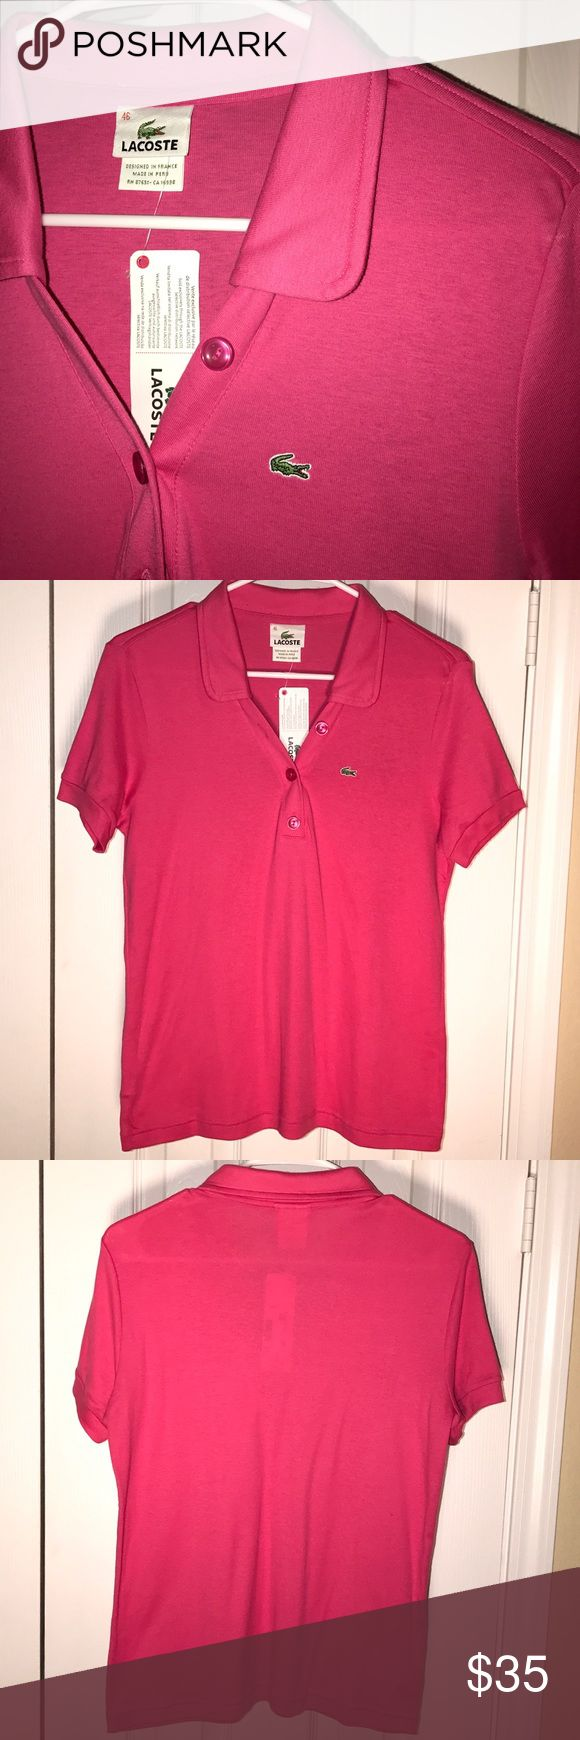 Lacoste Women's Polo NWT. LACOSTE WOMEN'S POLO. Purchased at Lacoste store in NY.  Super cute & perfect for summer. 🌸 Lacoste Tops Tees - Short Sleeve